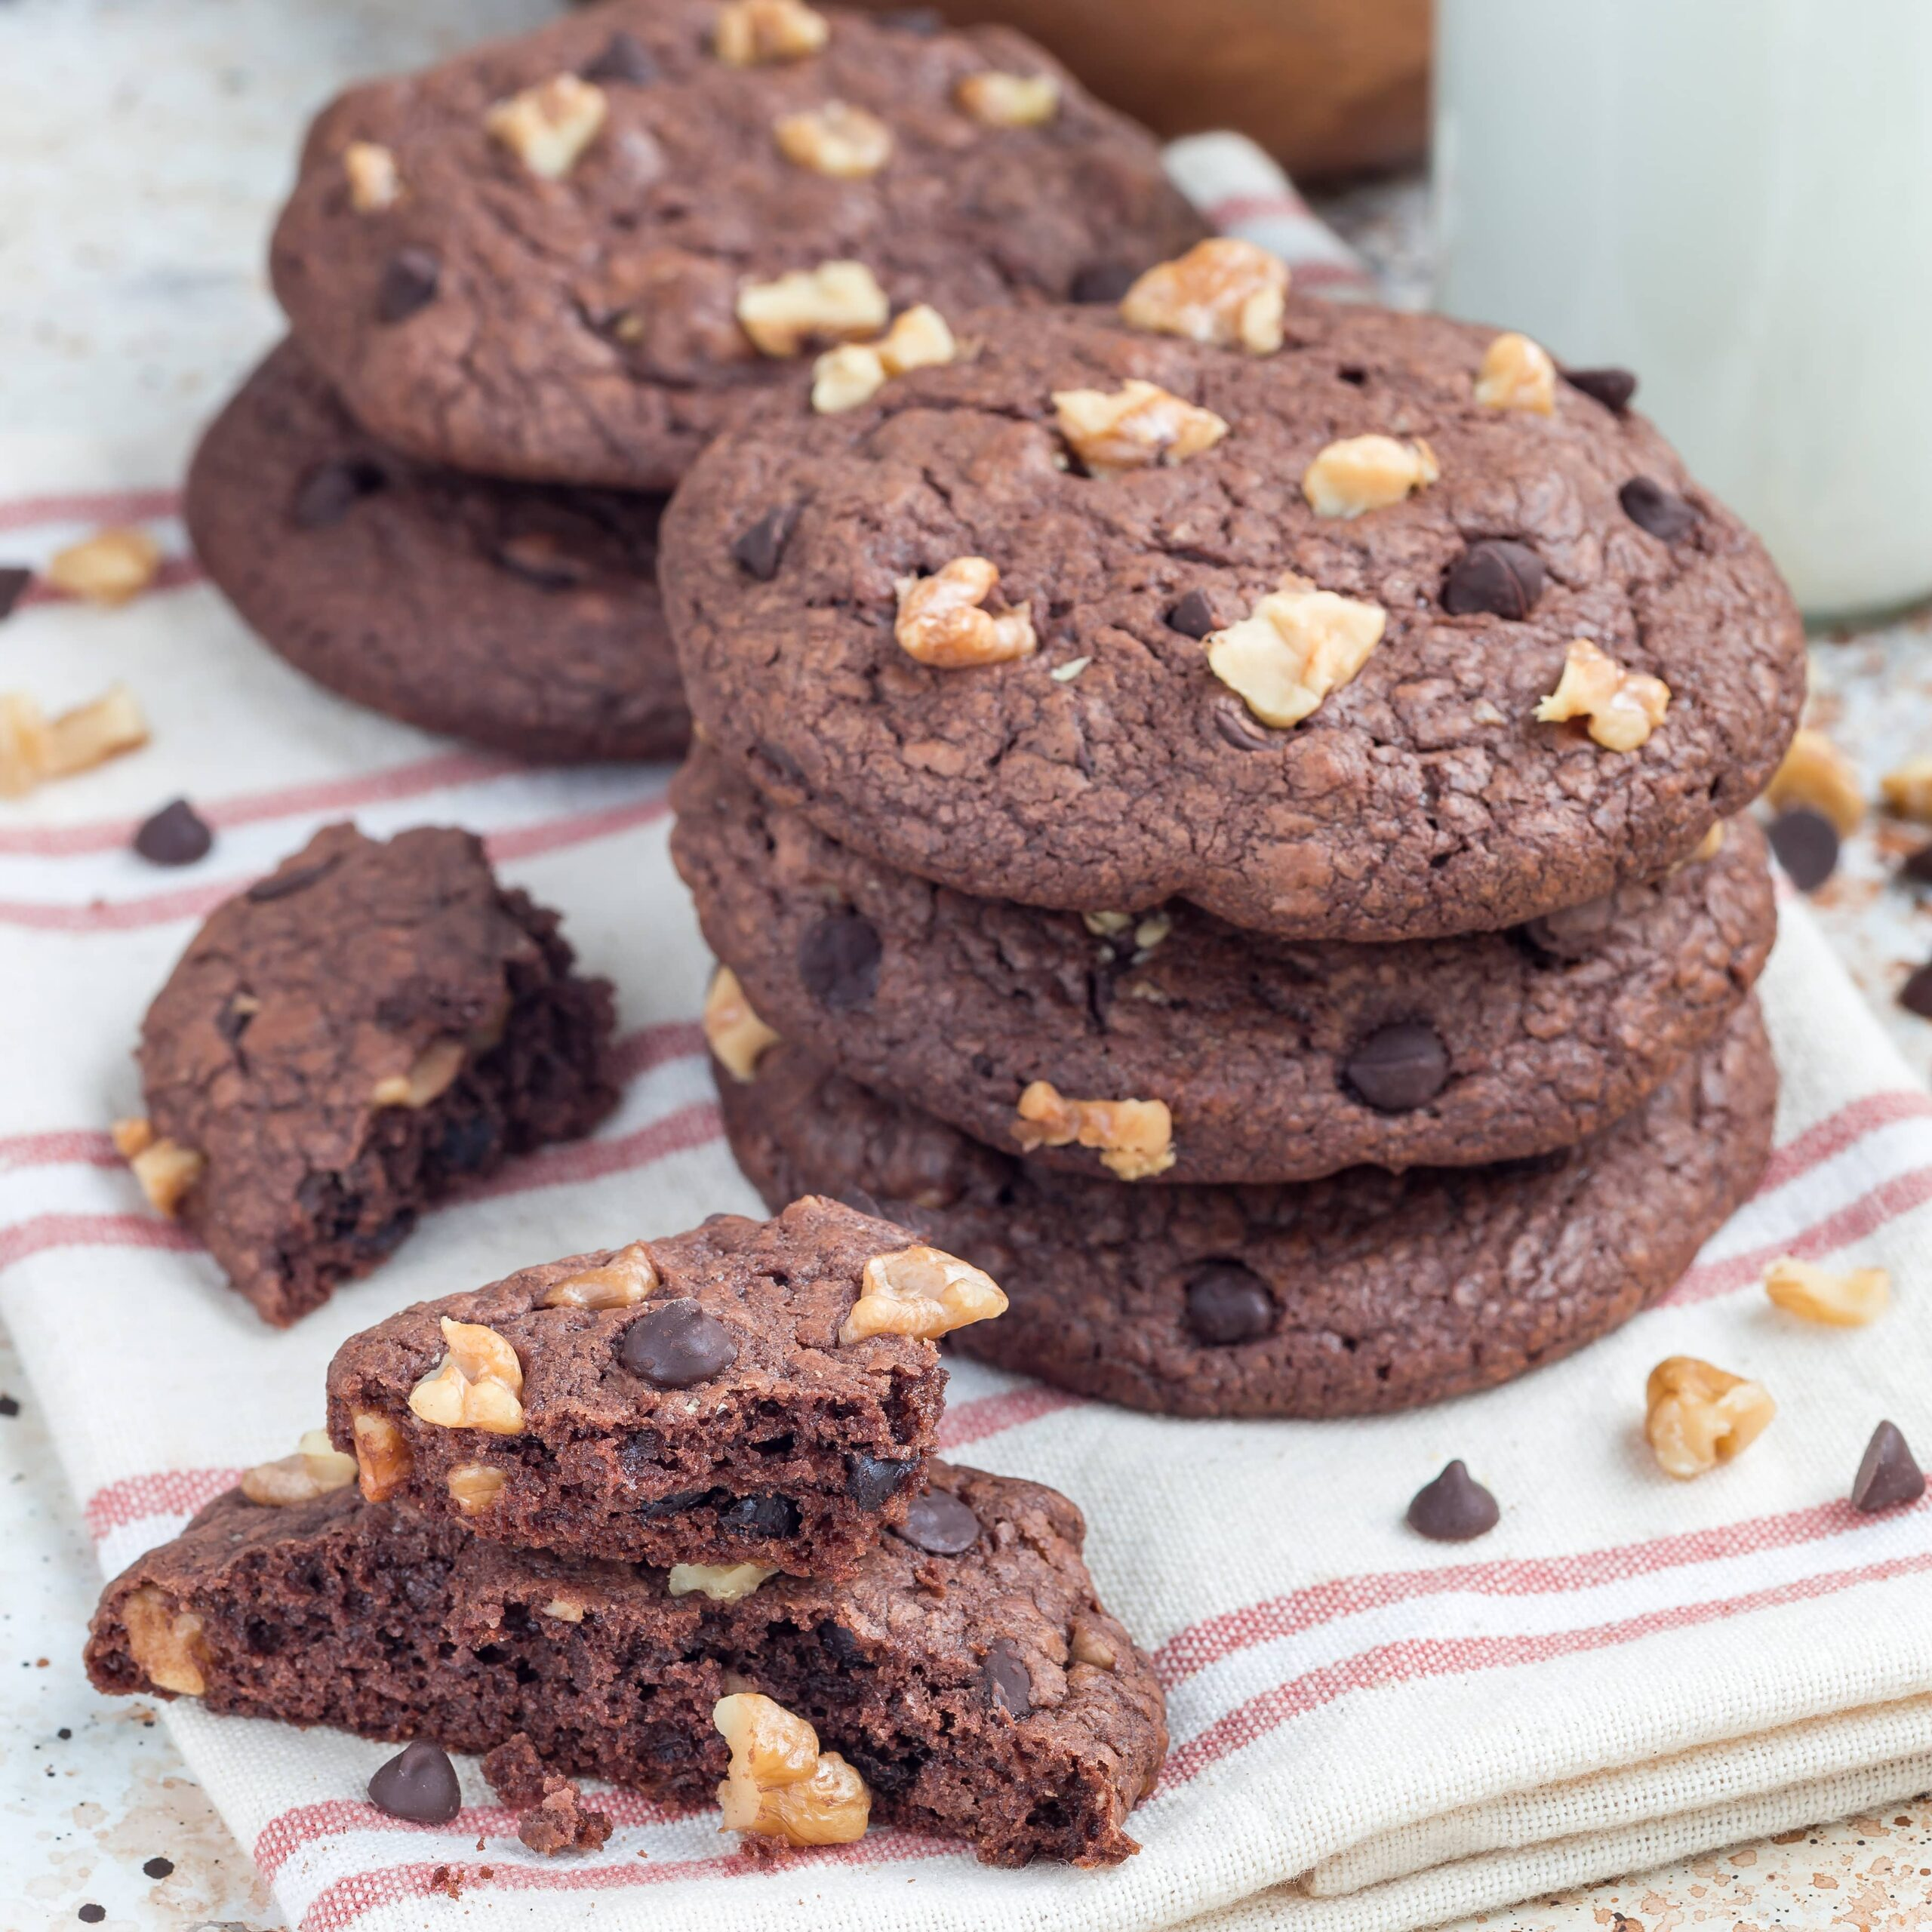 Homemade-chocolate-cookies-with-walnuts-and-chocol-PNT7VPP (1)